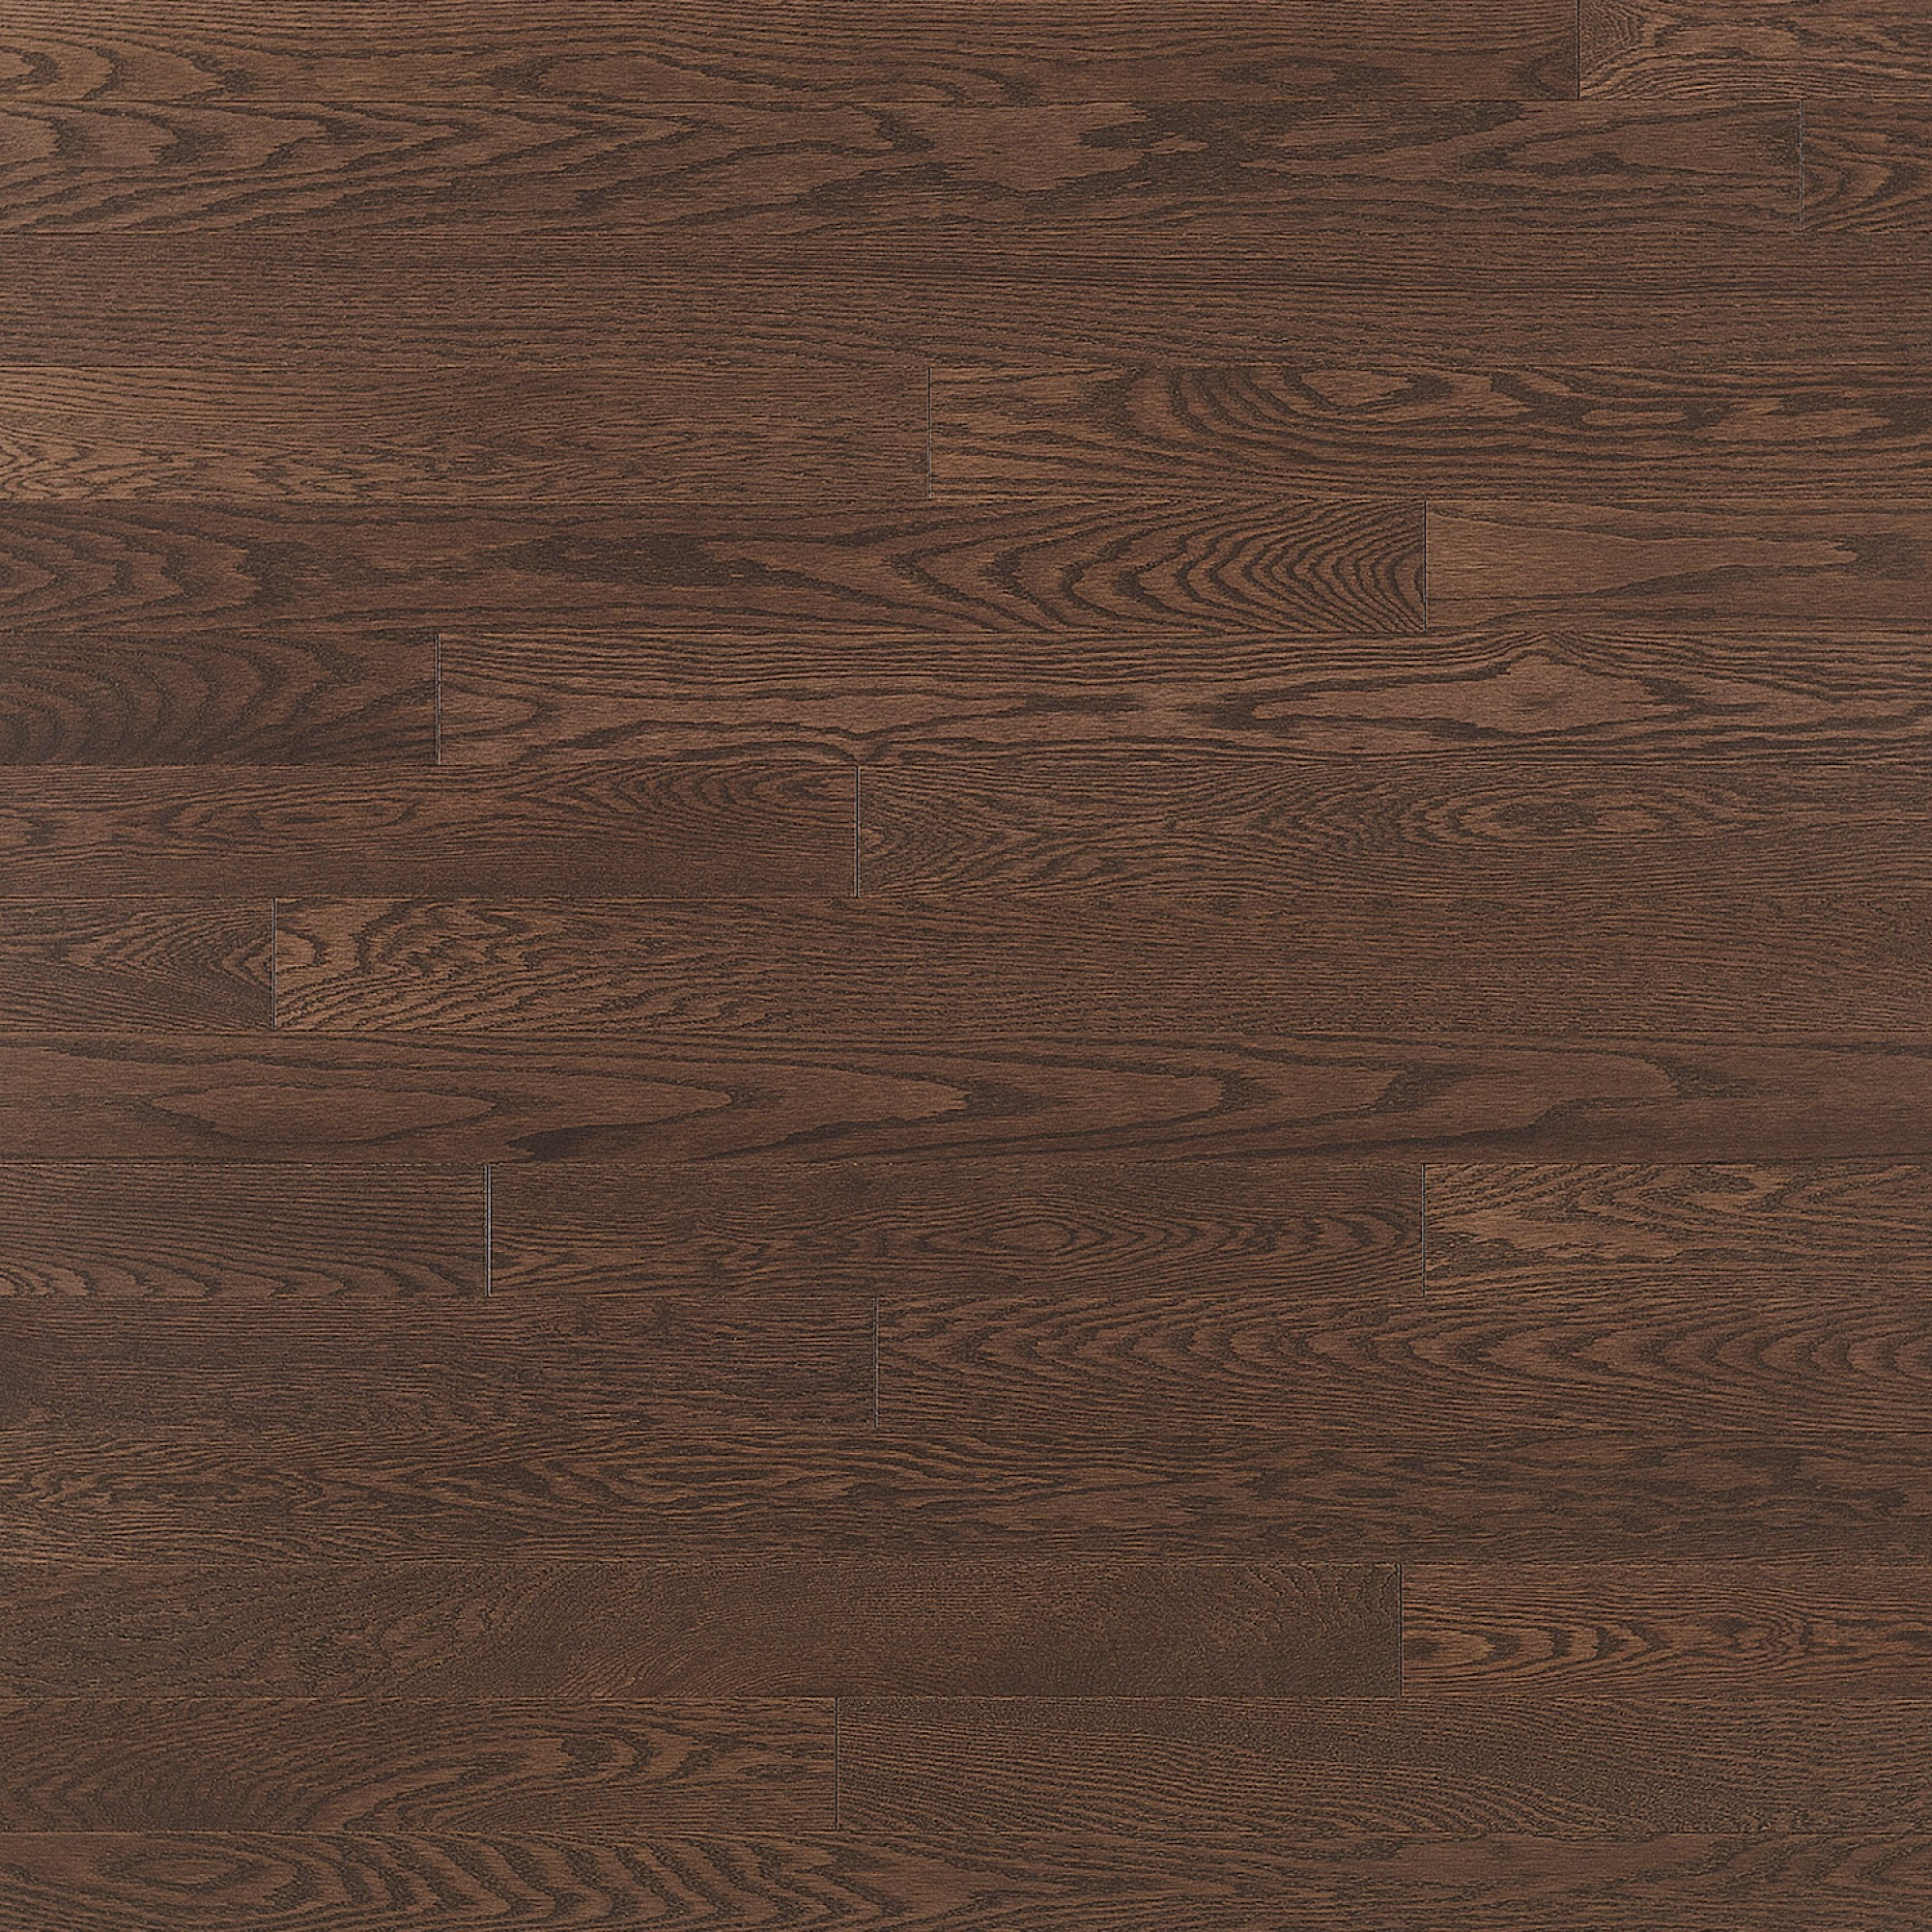 Du Chateau Flooring Reviews: Red Oak Waterloo Mirage Hardwood Floors